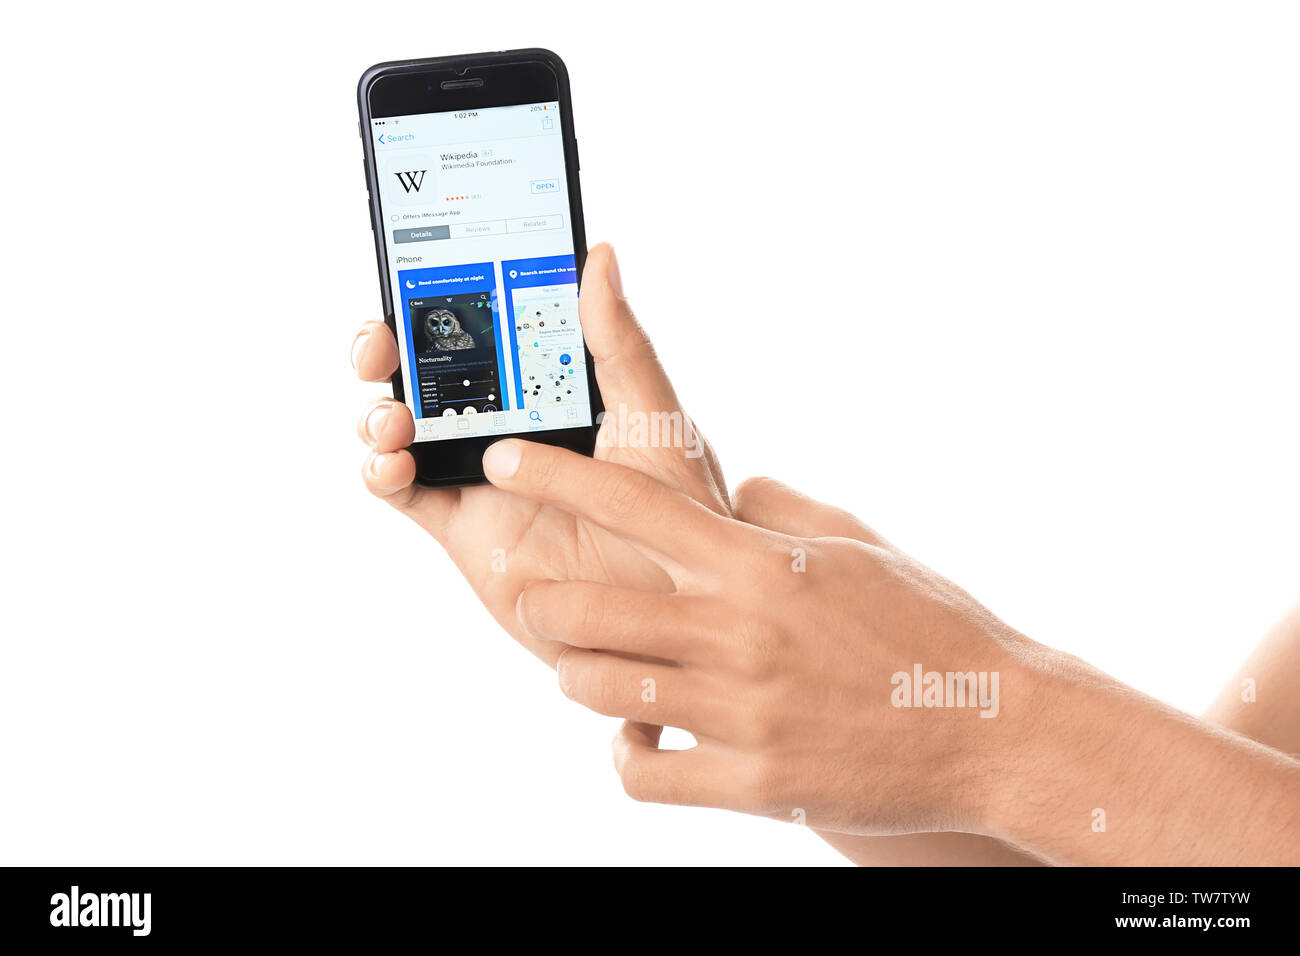 Wikipedia App Stock Photos & Wikipedia App Stock Images - Alamy